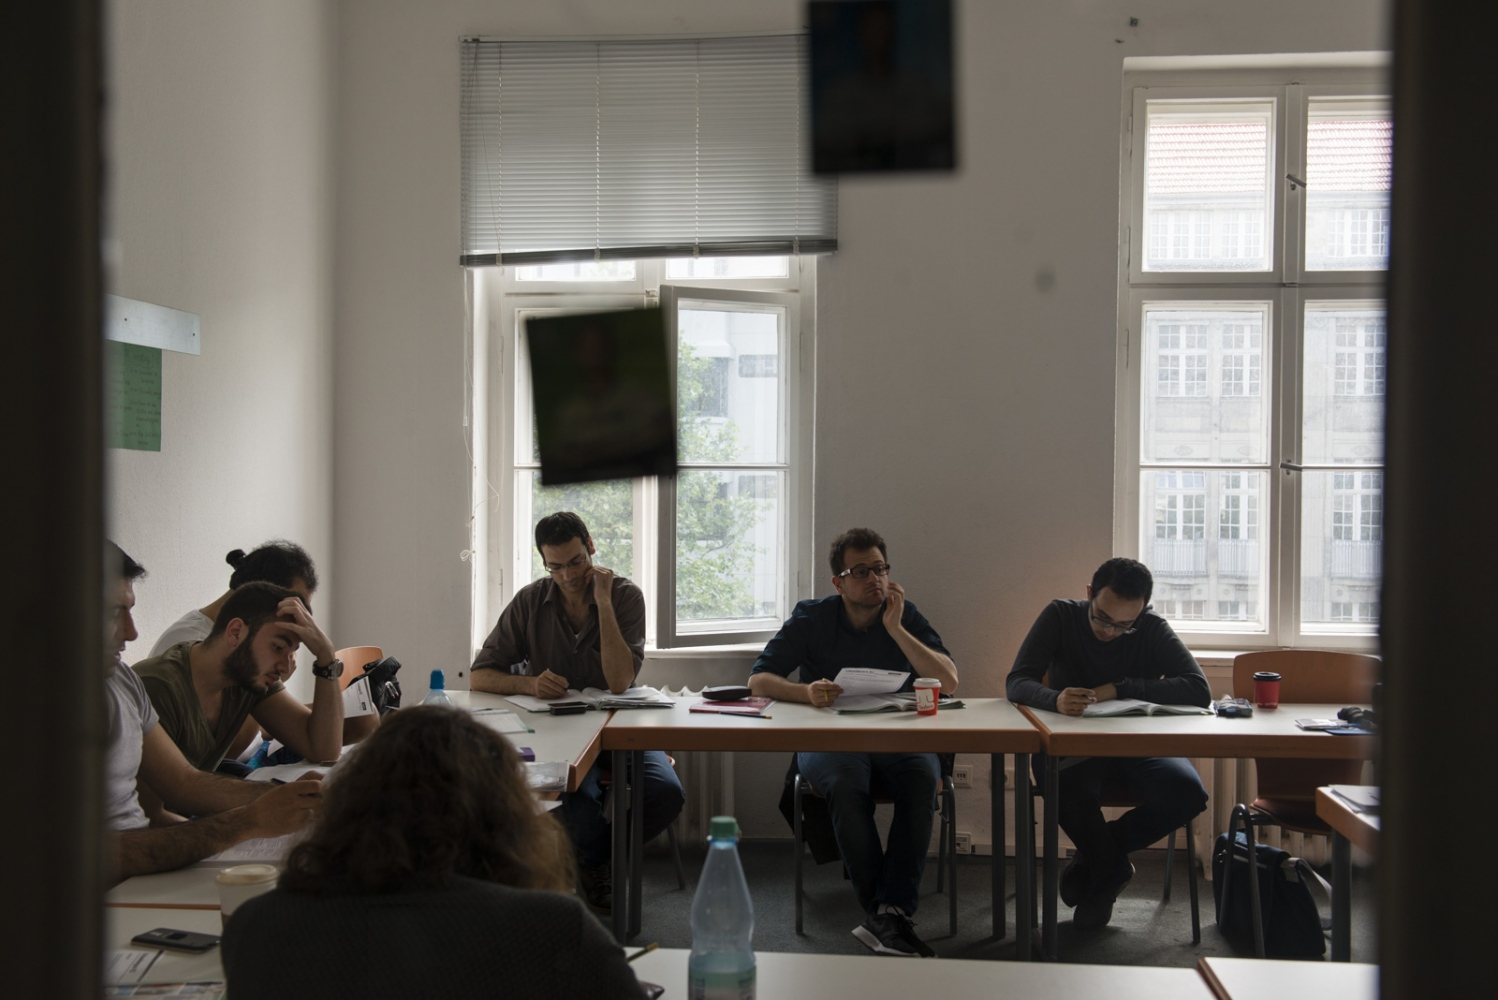 BERLIN | GERMANY | 2016-05-31| Refugees, many of whom Syrians, study German inside a language school located in central Berlin.